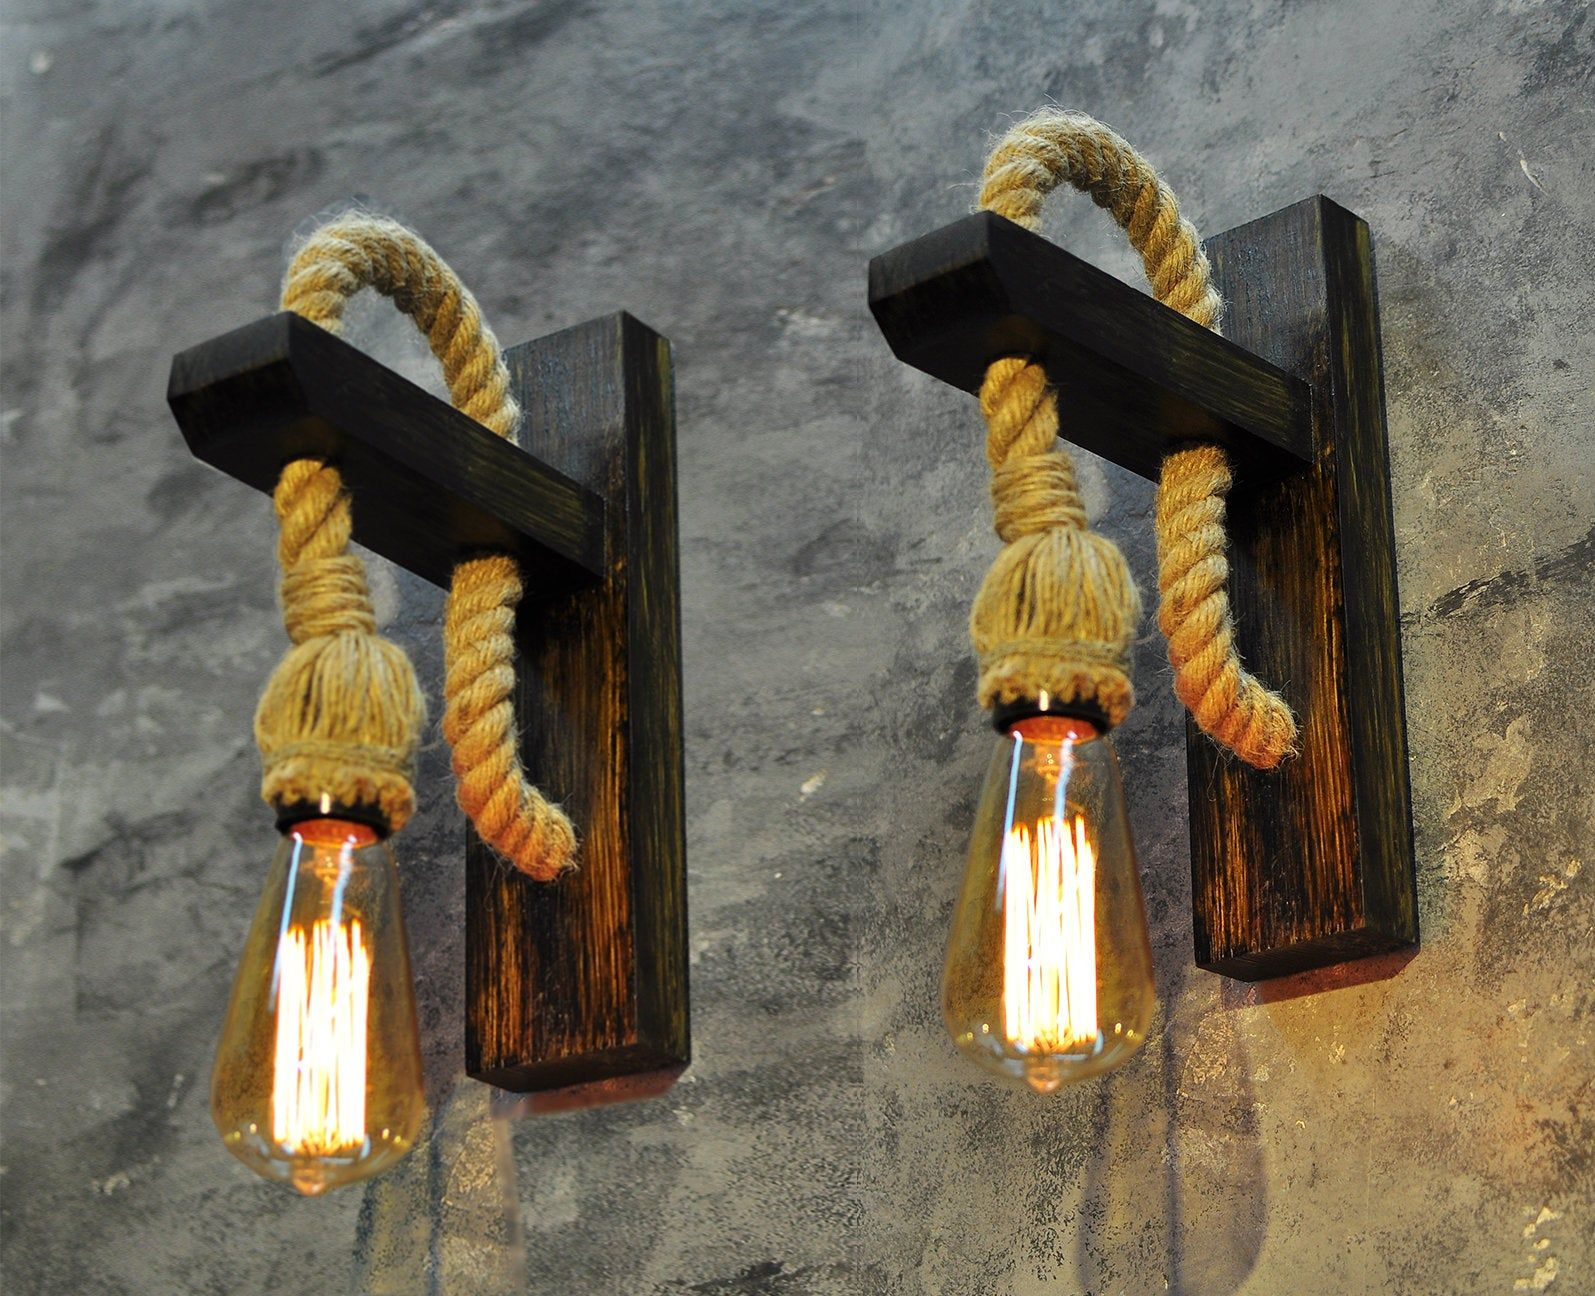 Set Of 2 Wood Lamps With Rope Cord Wall Edison Sconces Rustic Etsy In 2021 Wooden Pendant Lighting Rustic Light Fixtures Rustic Wall Lighting Rustic wall light fixture